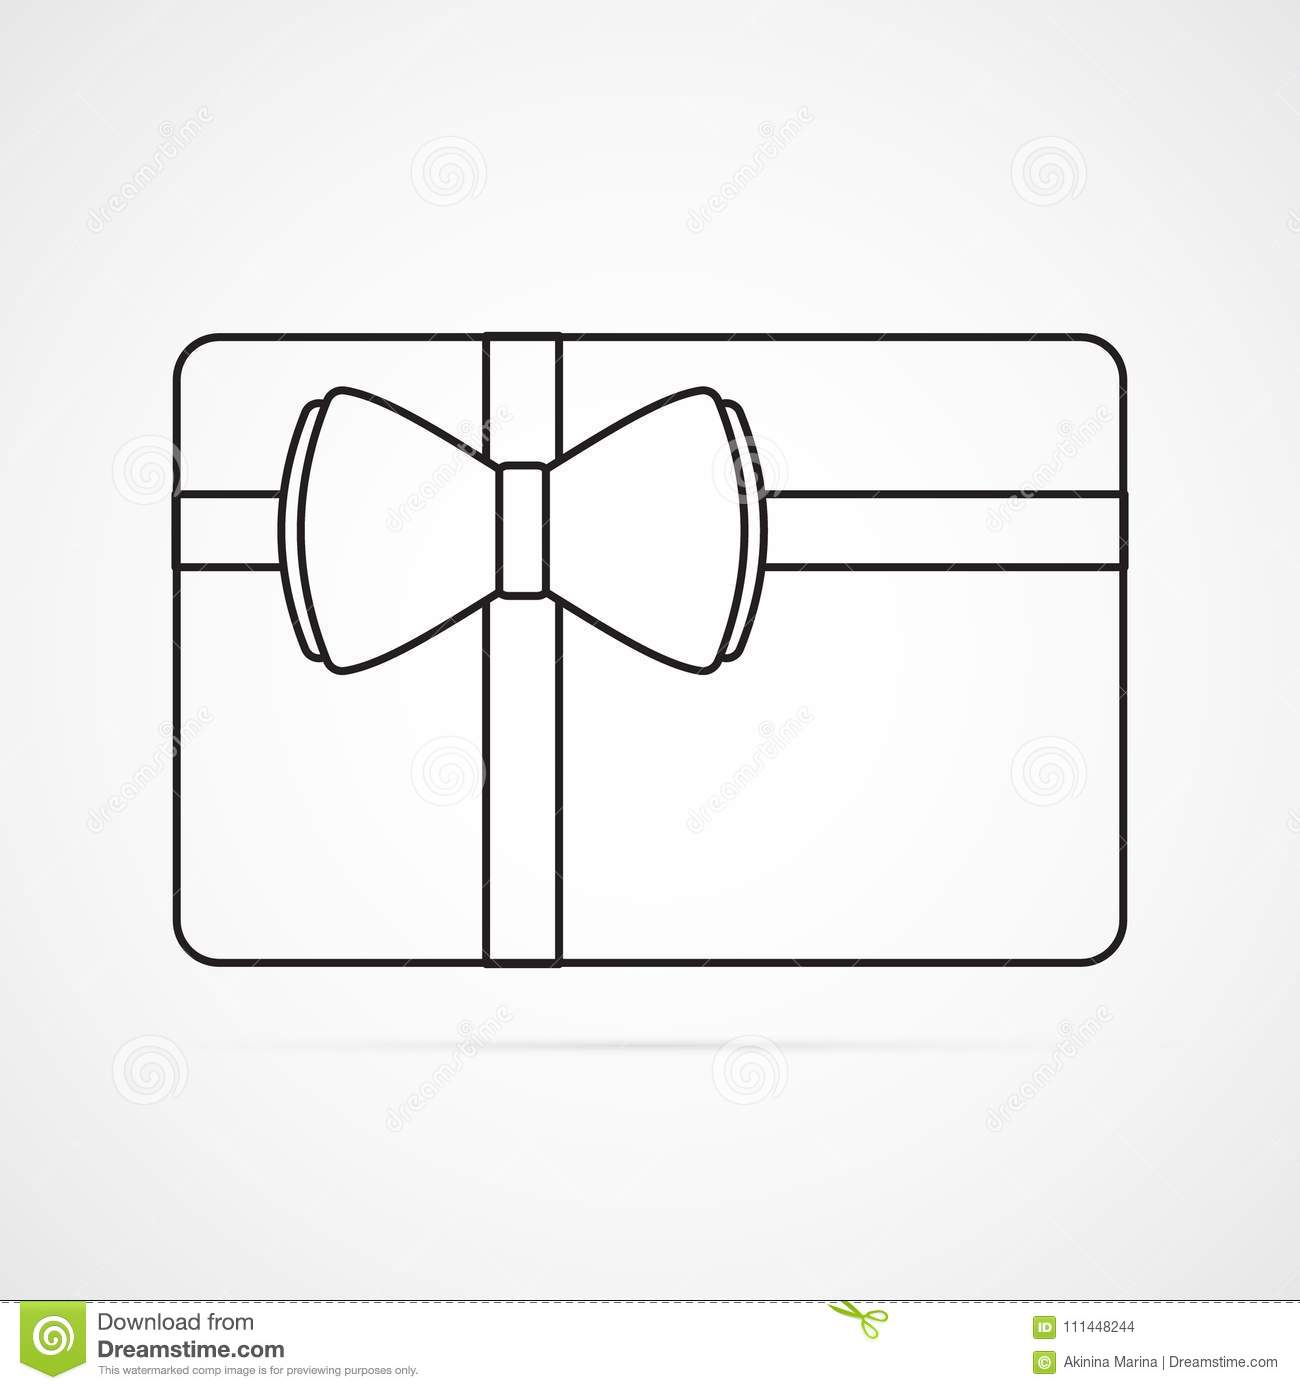 Carved silhouette flat icon, simple vector design. Rectangle card with bow